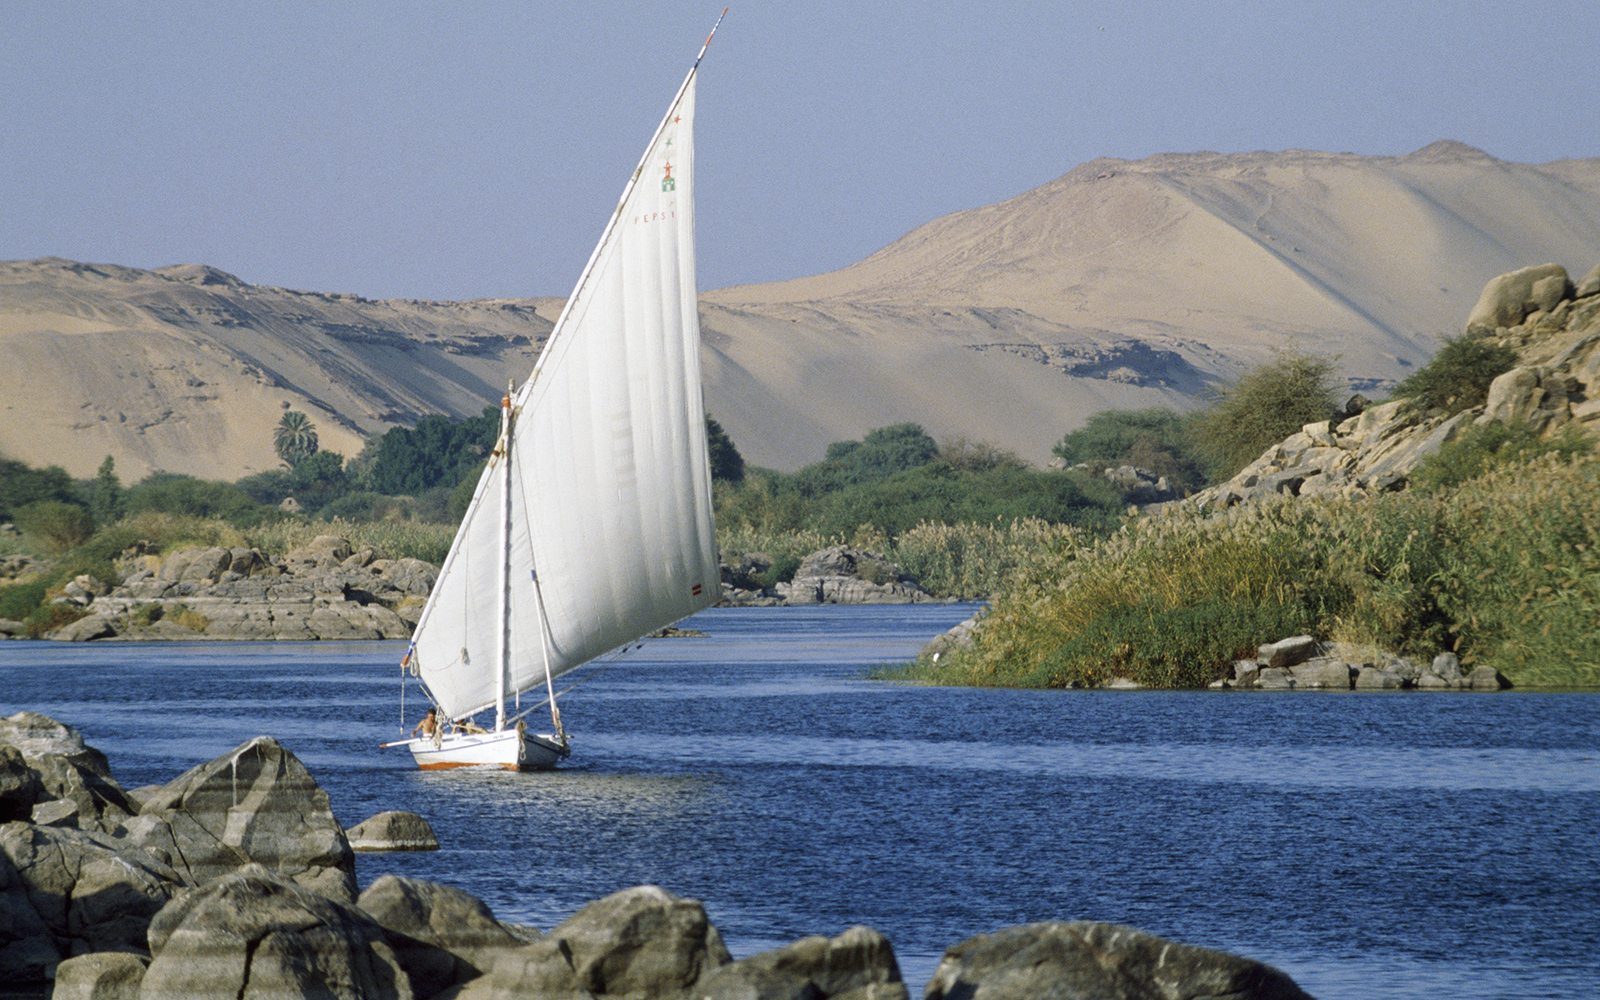 Sail Boat on the Nile River